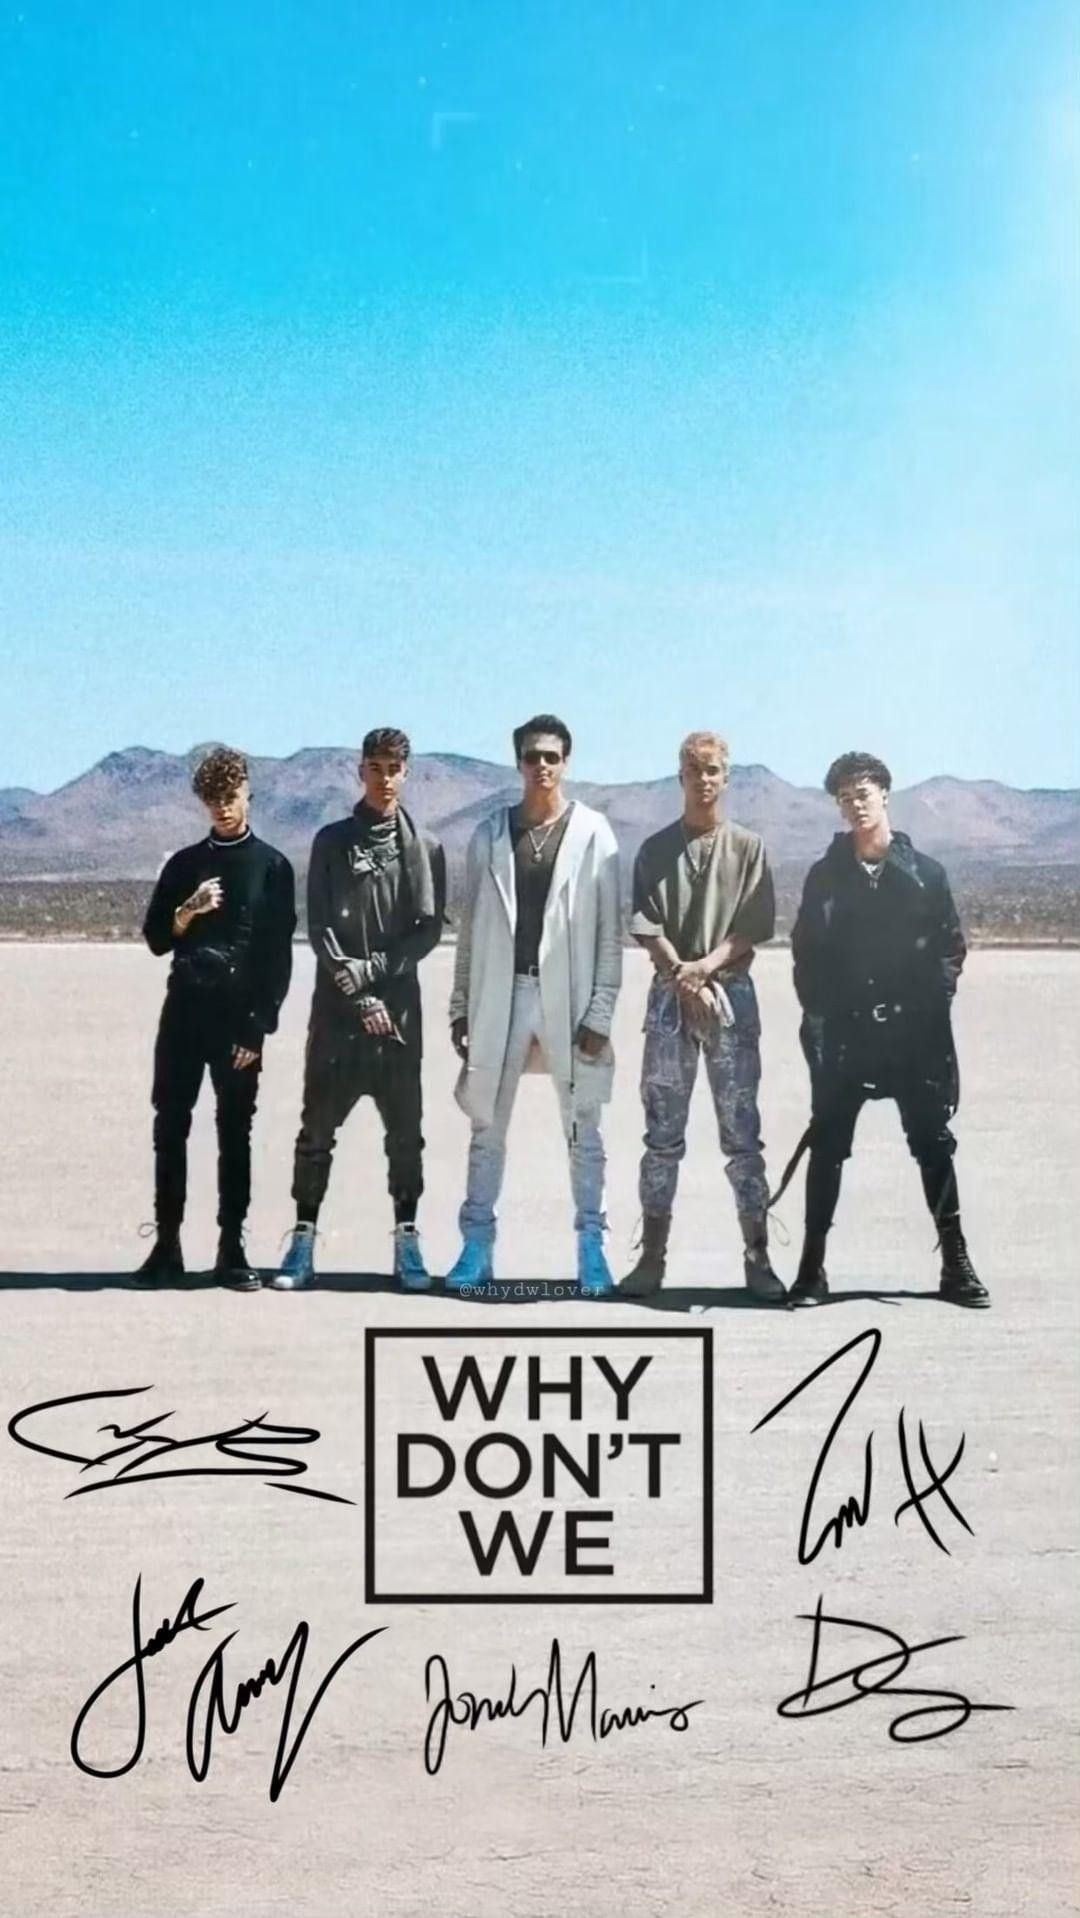 Wallpaper Band Wallpapers Boys Wallpaper Why Dont We Band